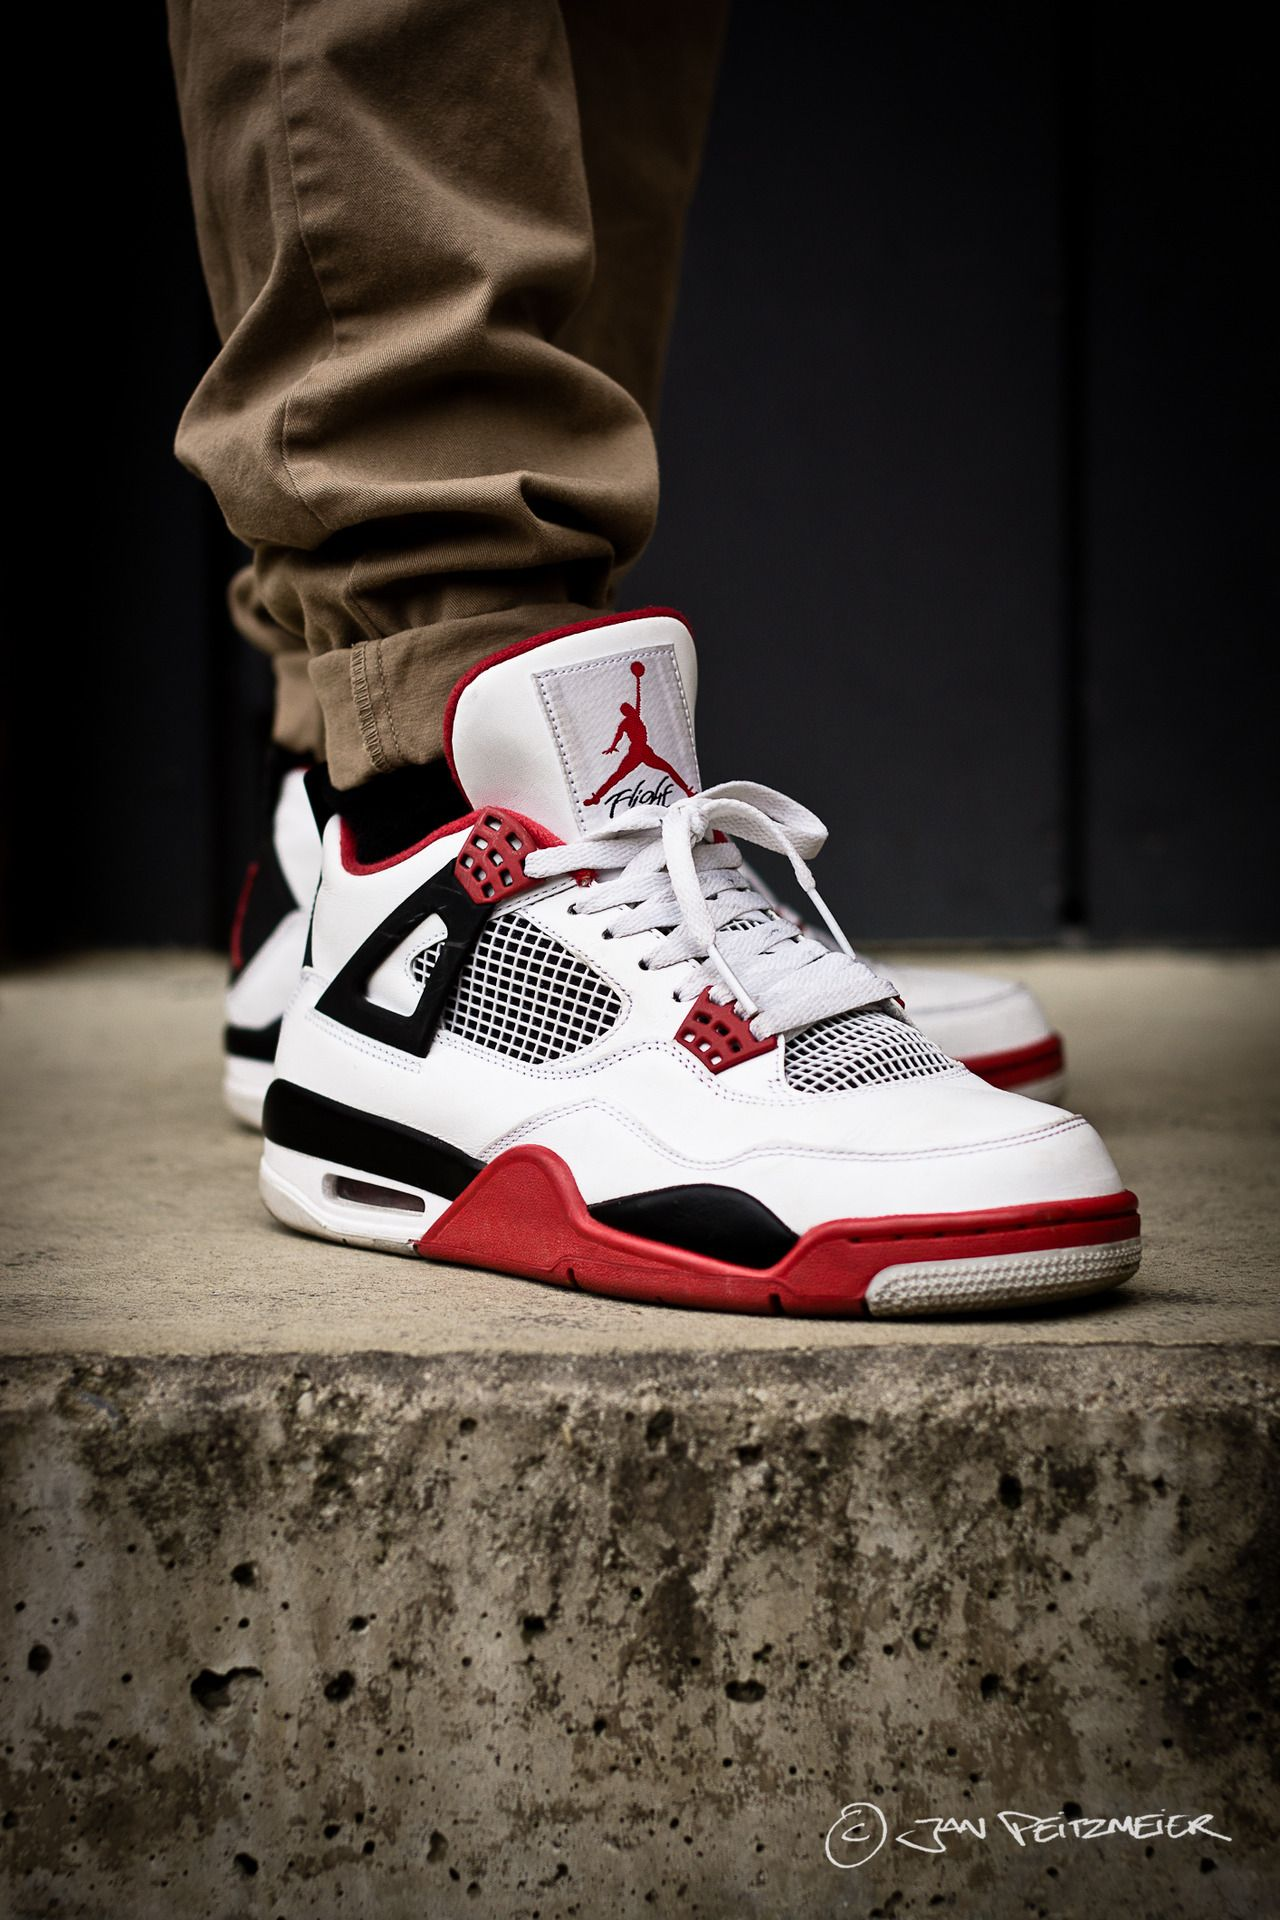 cheap for discount e51a3 de4a3 Nike Air Jordan IV Retro Fire Red - sneakeraddict.net... -